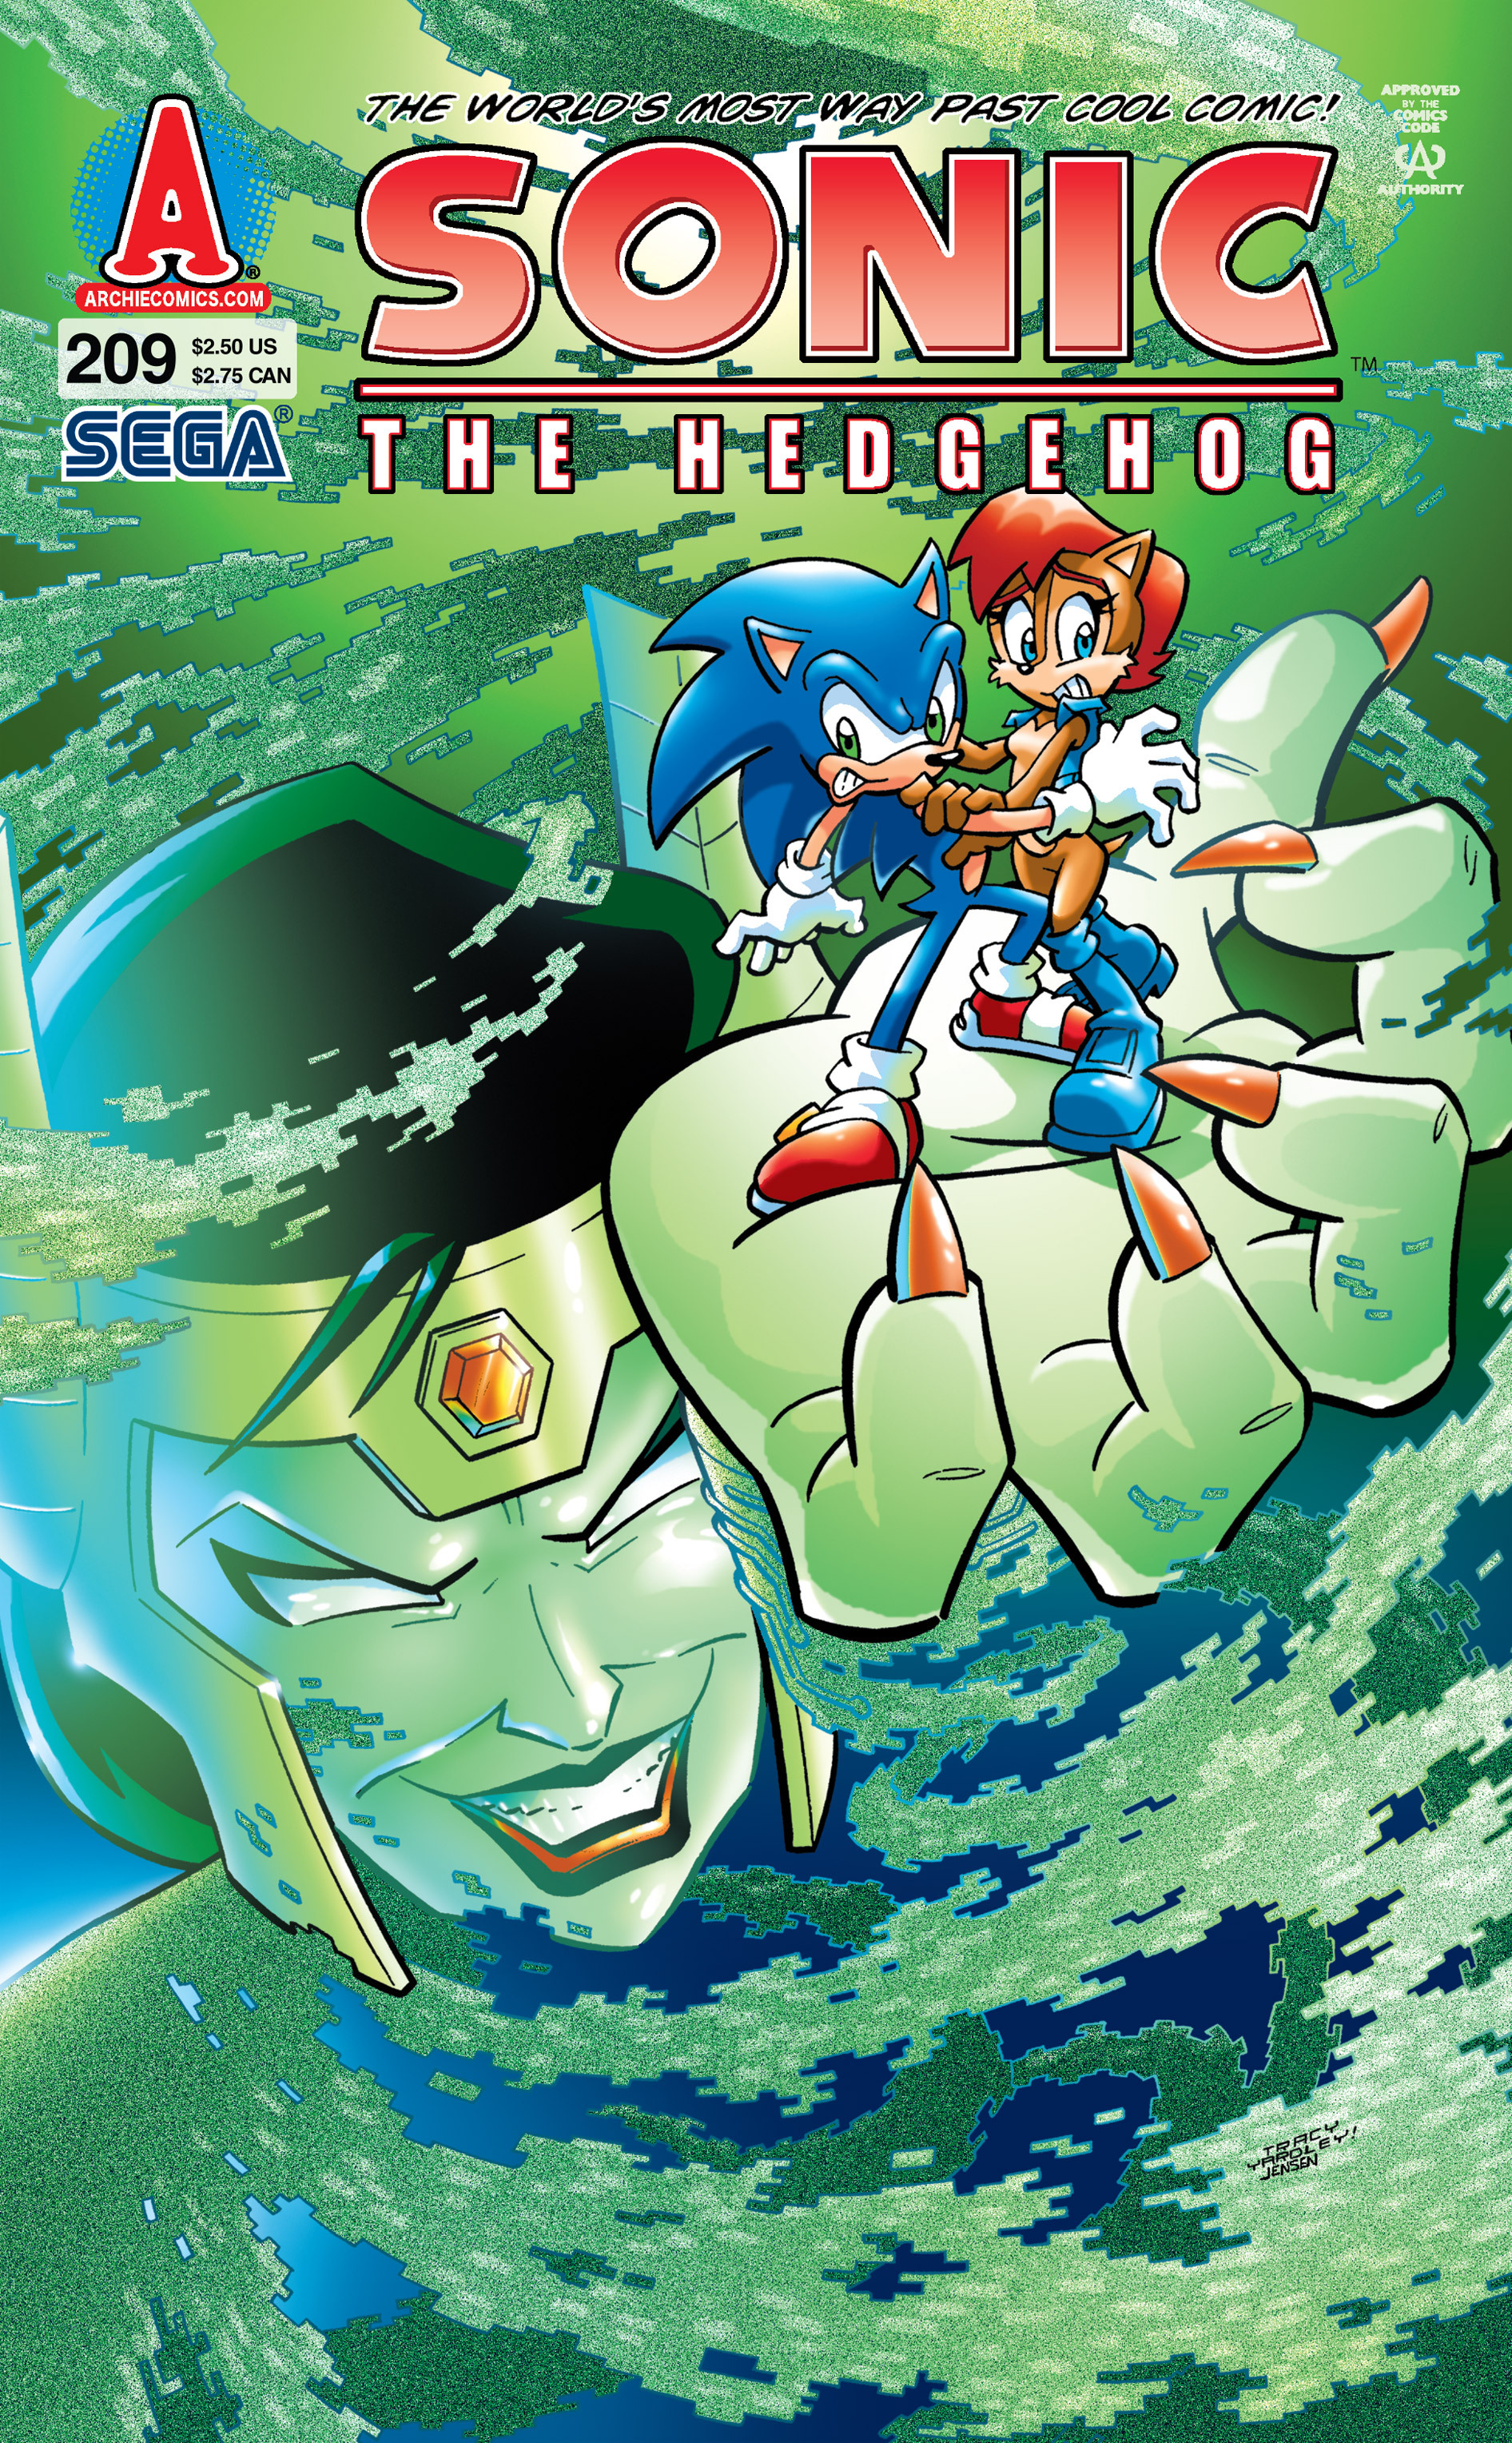 archie sonic the hedgehog issue 209 sonic news network